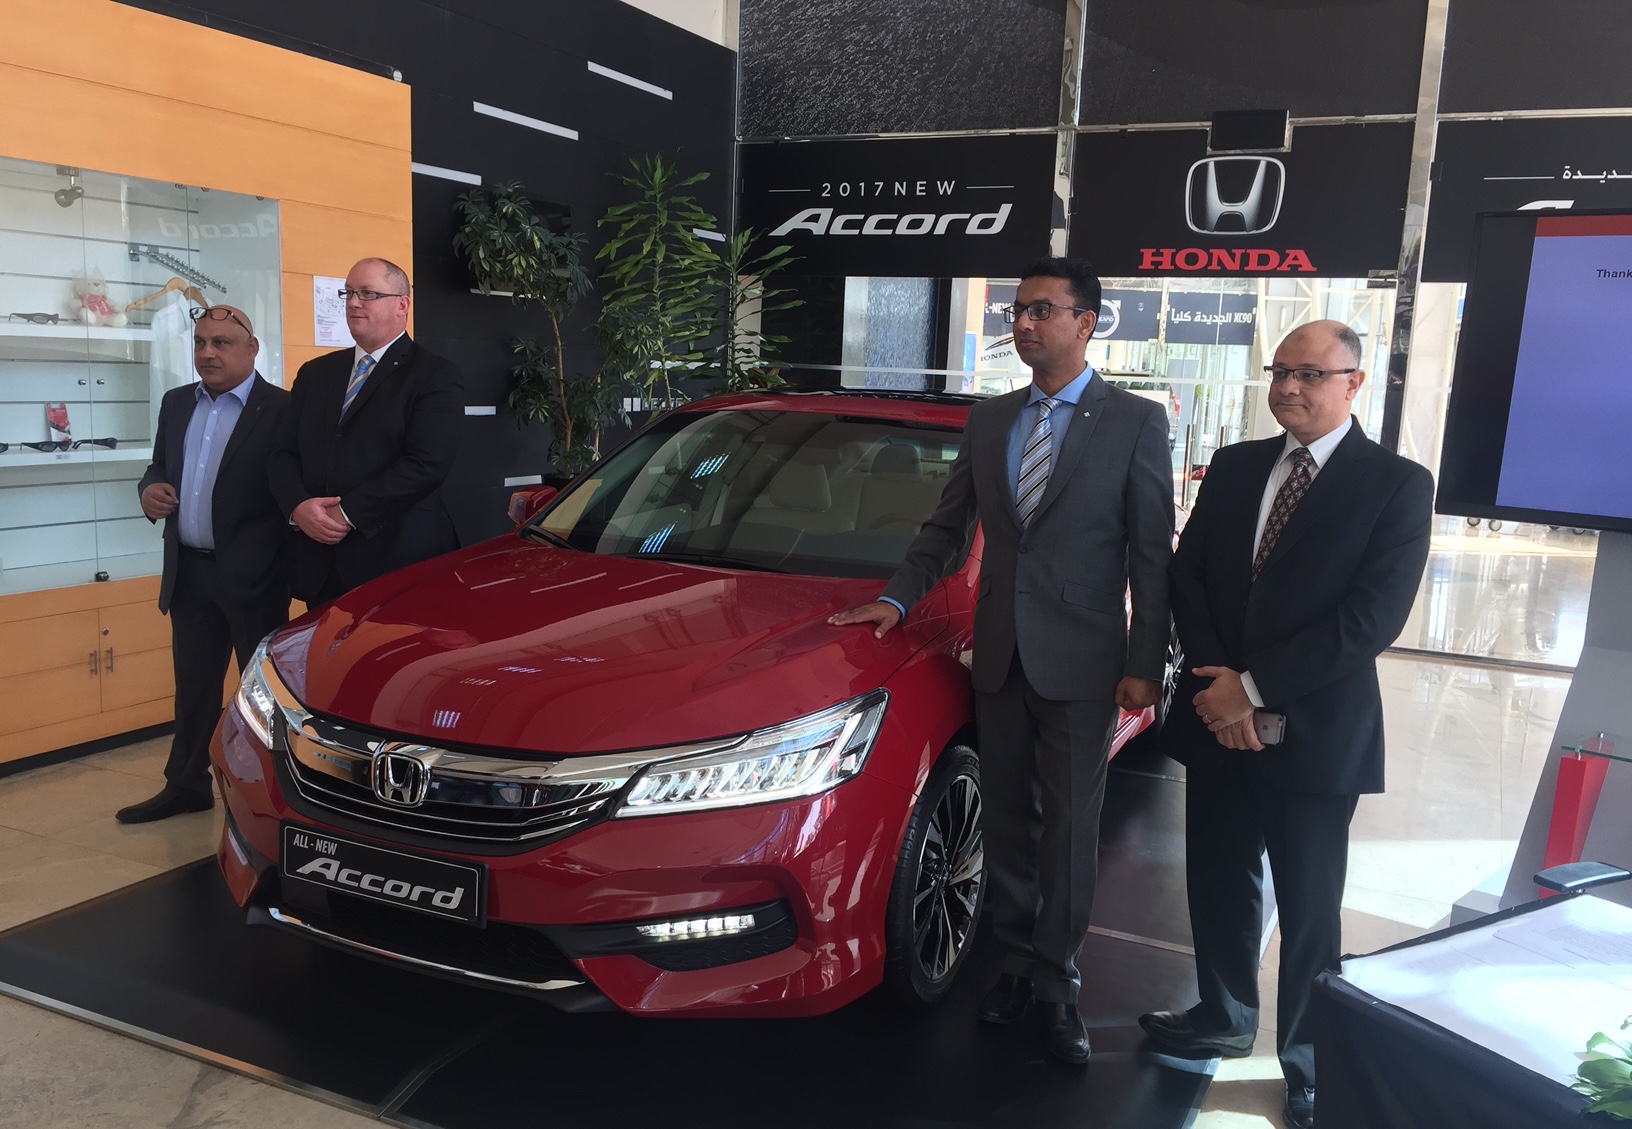 Honda Qatar Launches the All-New Honda Accord